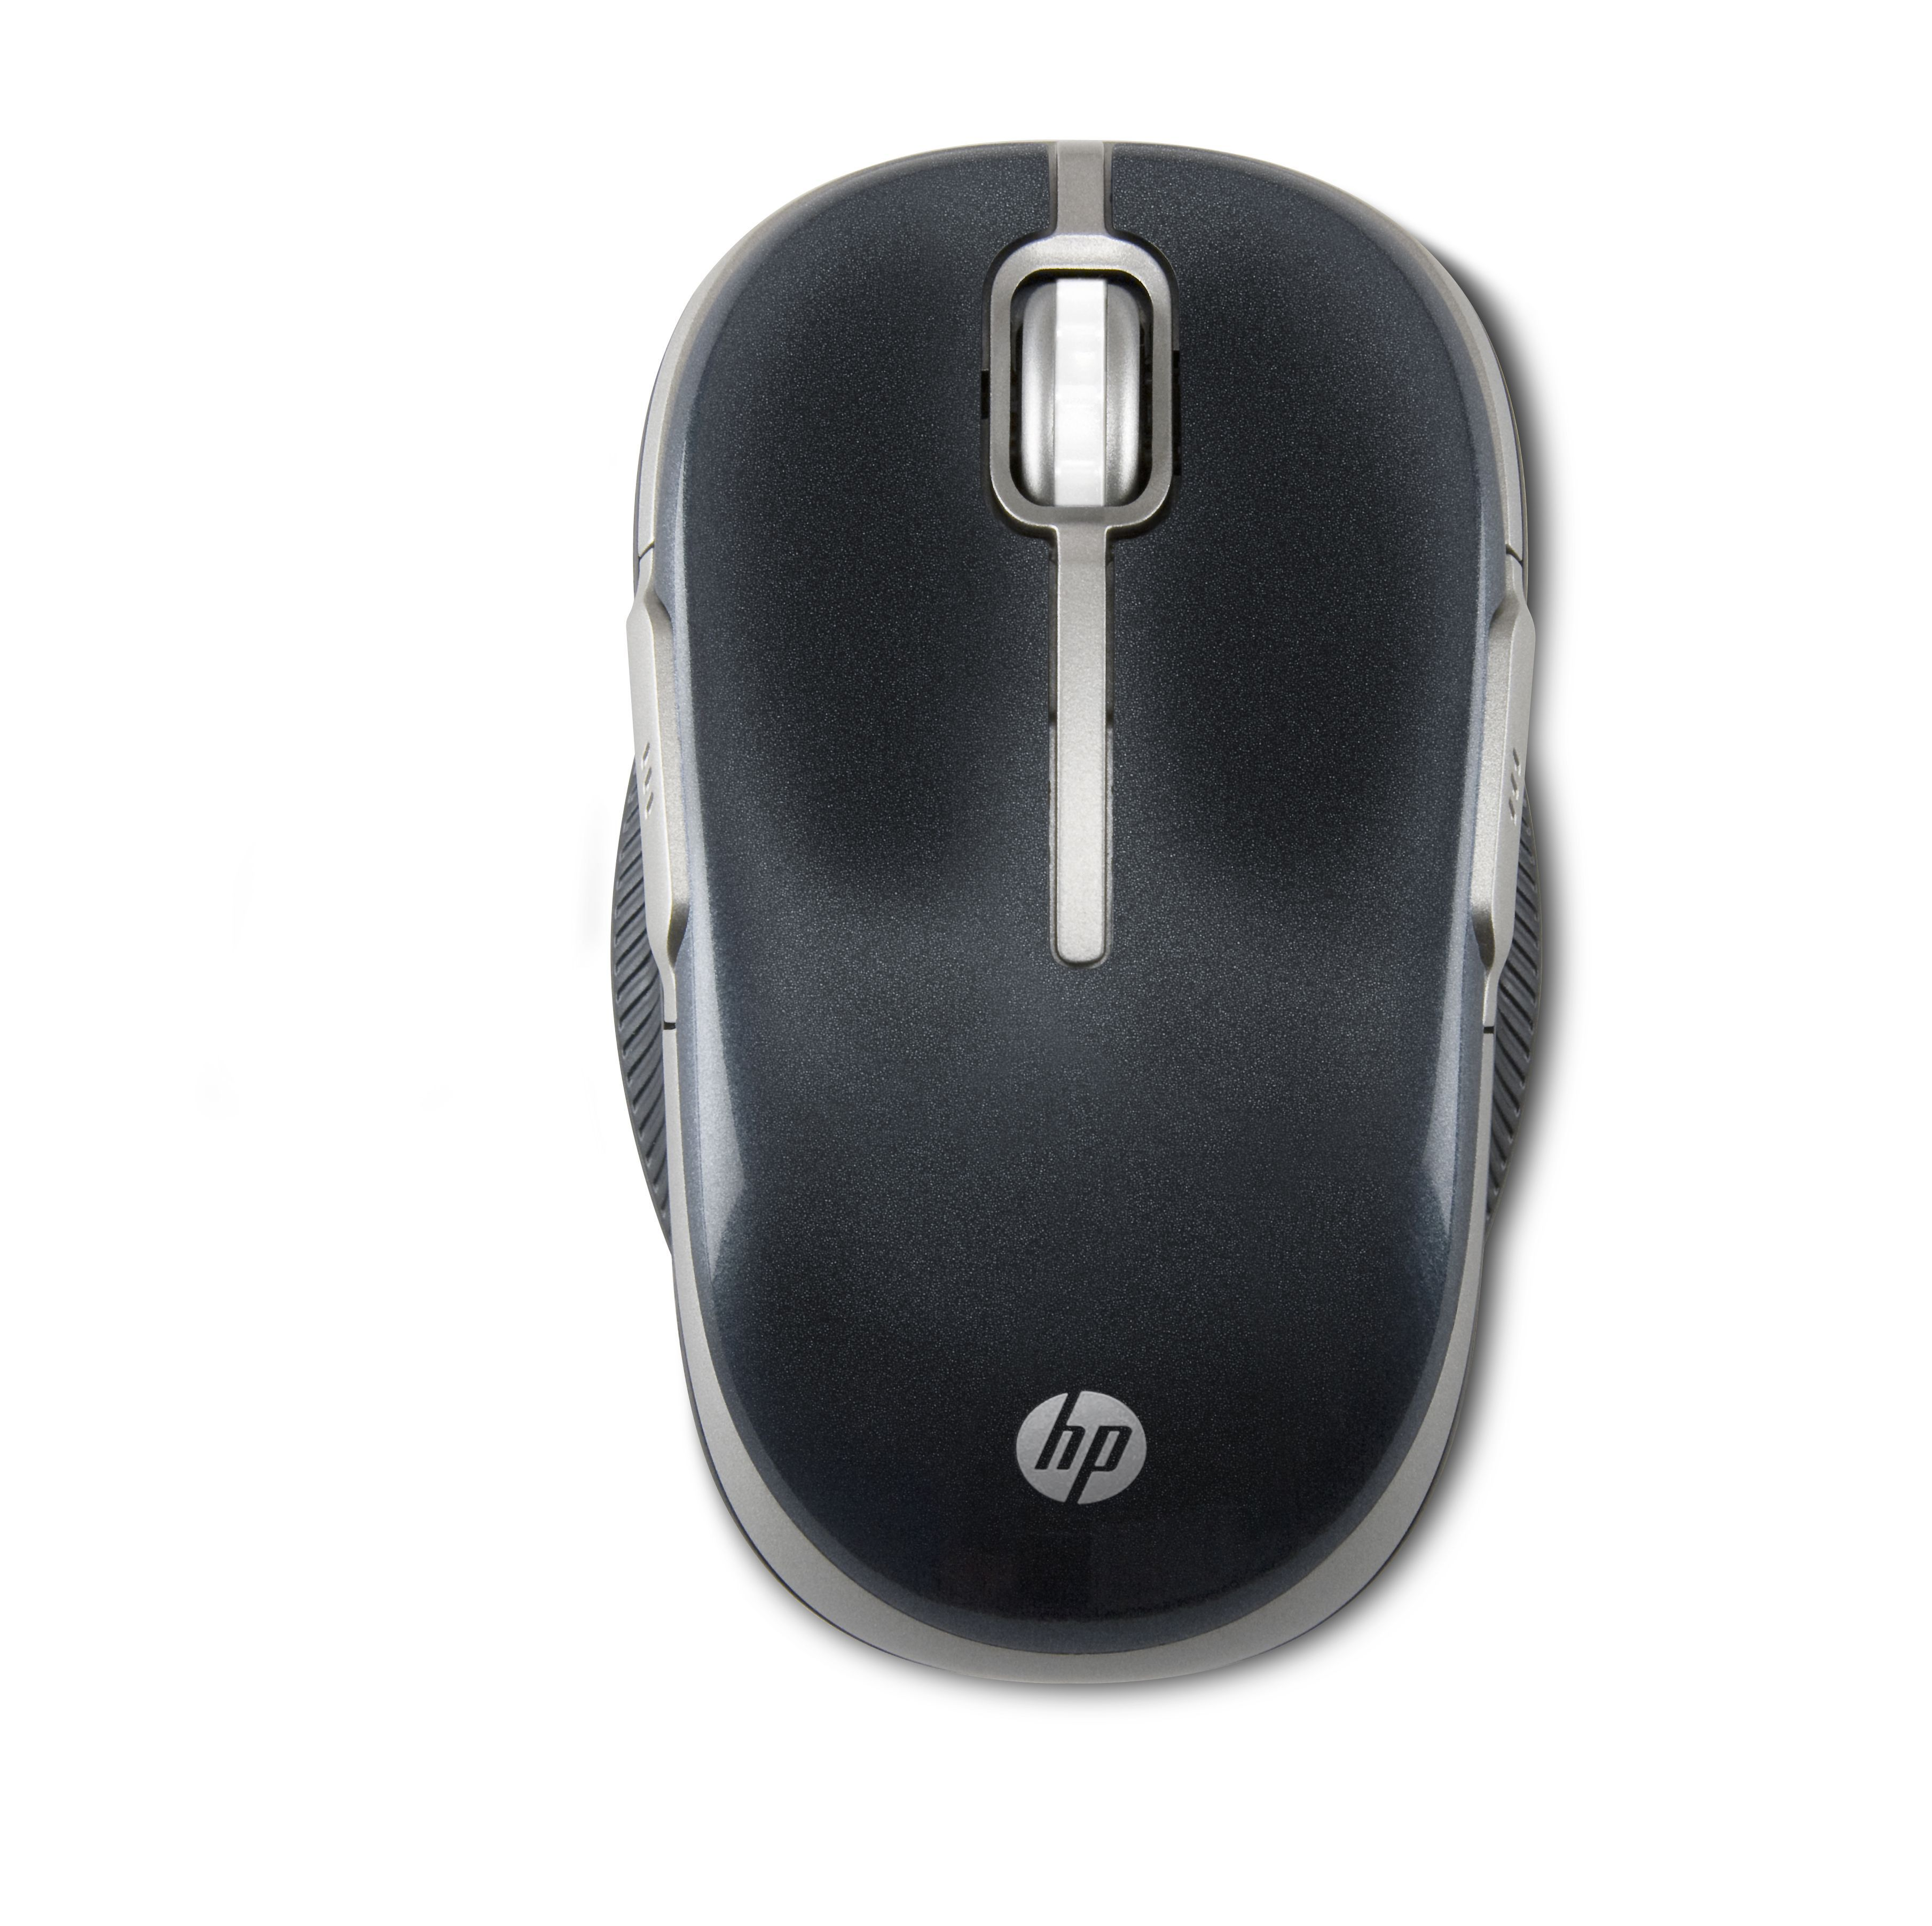 HP's new WiFi Mobile Mouse.